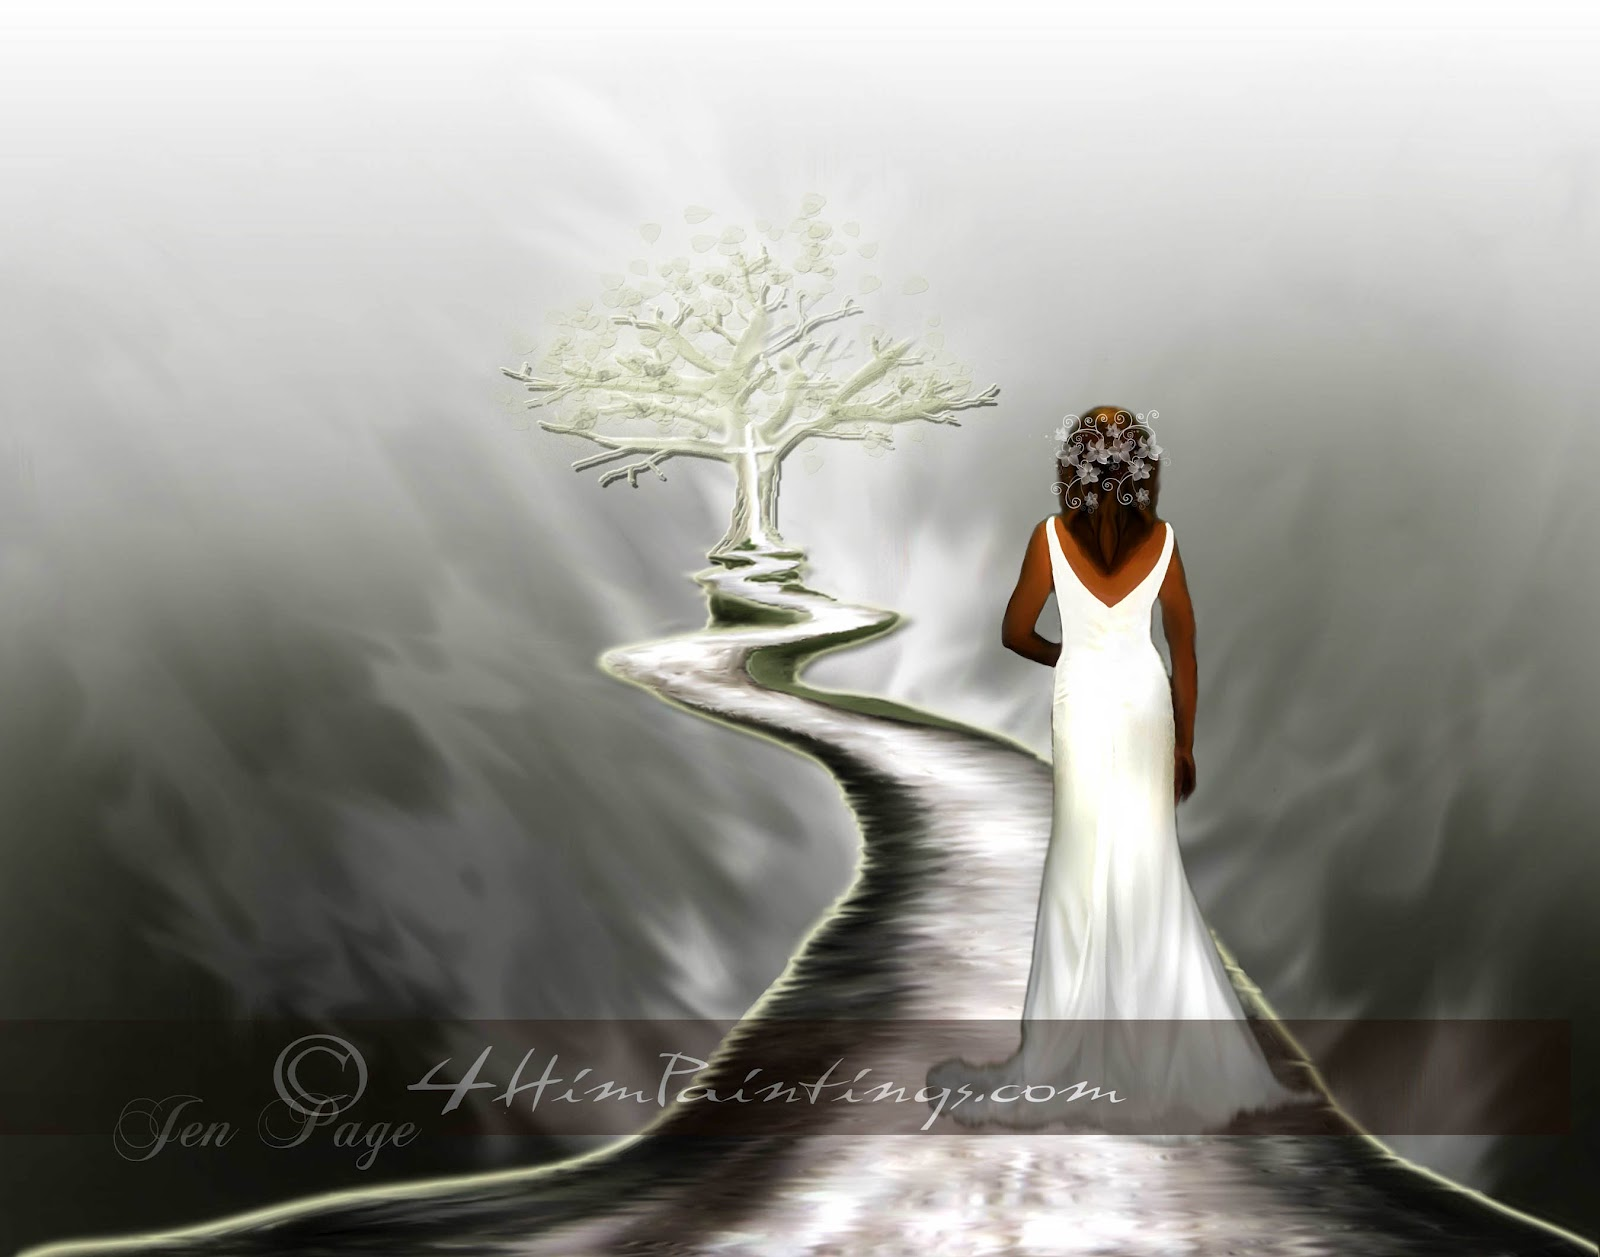 Pictures of Christ Bride http://4himpaintings.blogspot.com/2012/06/keep-moving-forward.html